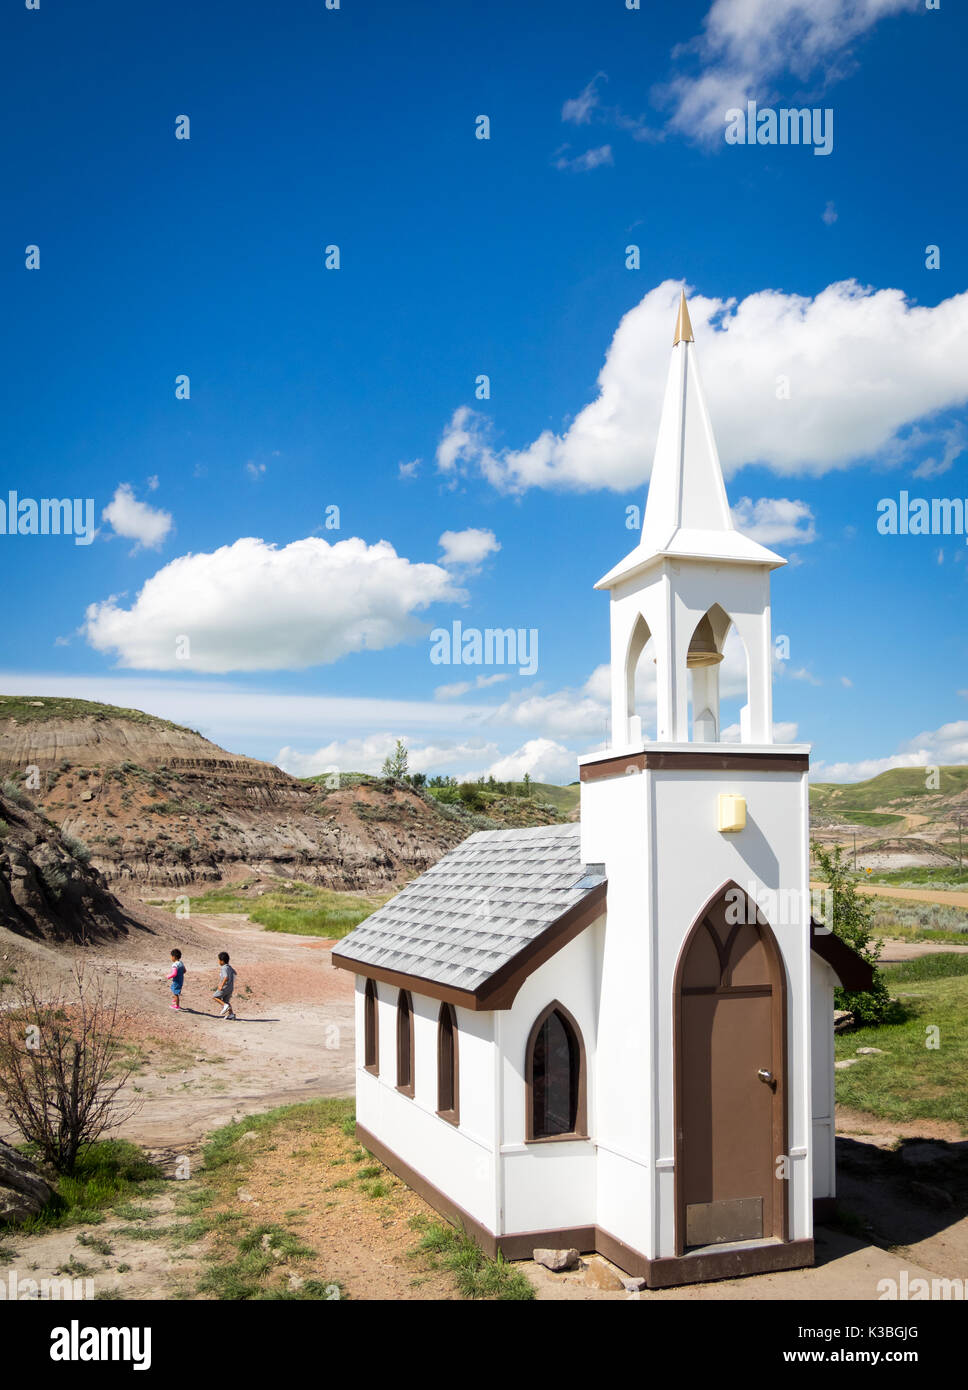 The famed Little Church in Drumheller, Alberta, Canada.  The capacity of the church is 6 people and is popular with - Stock Image